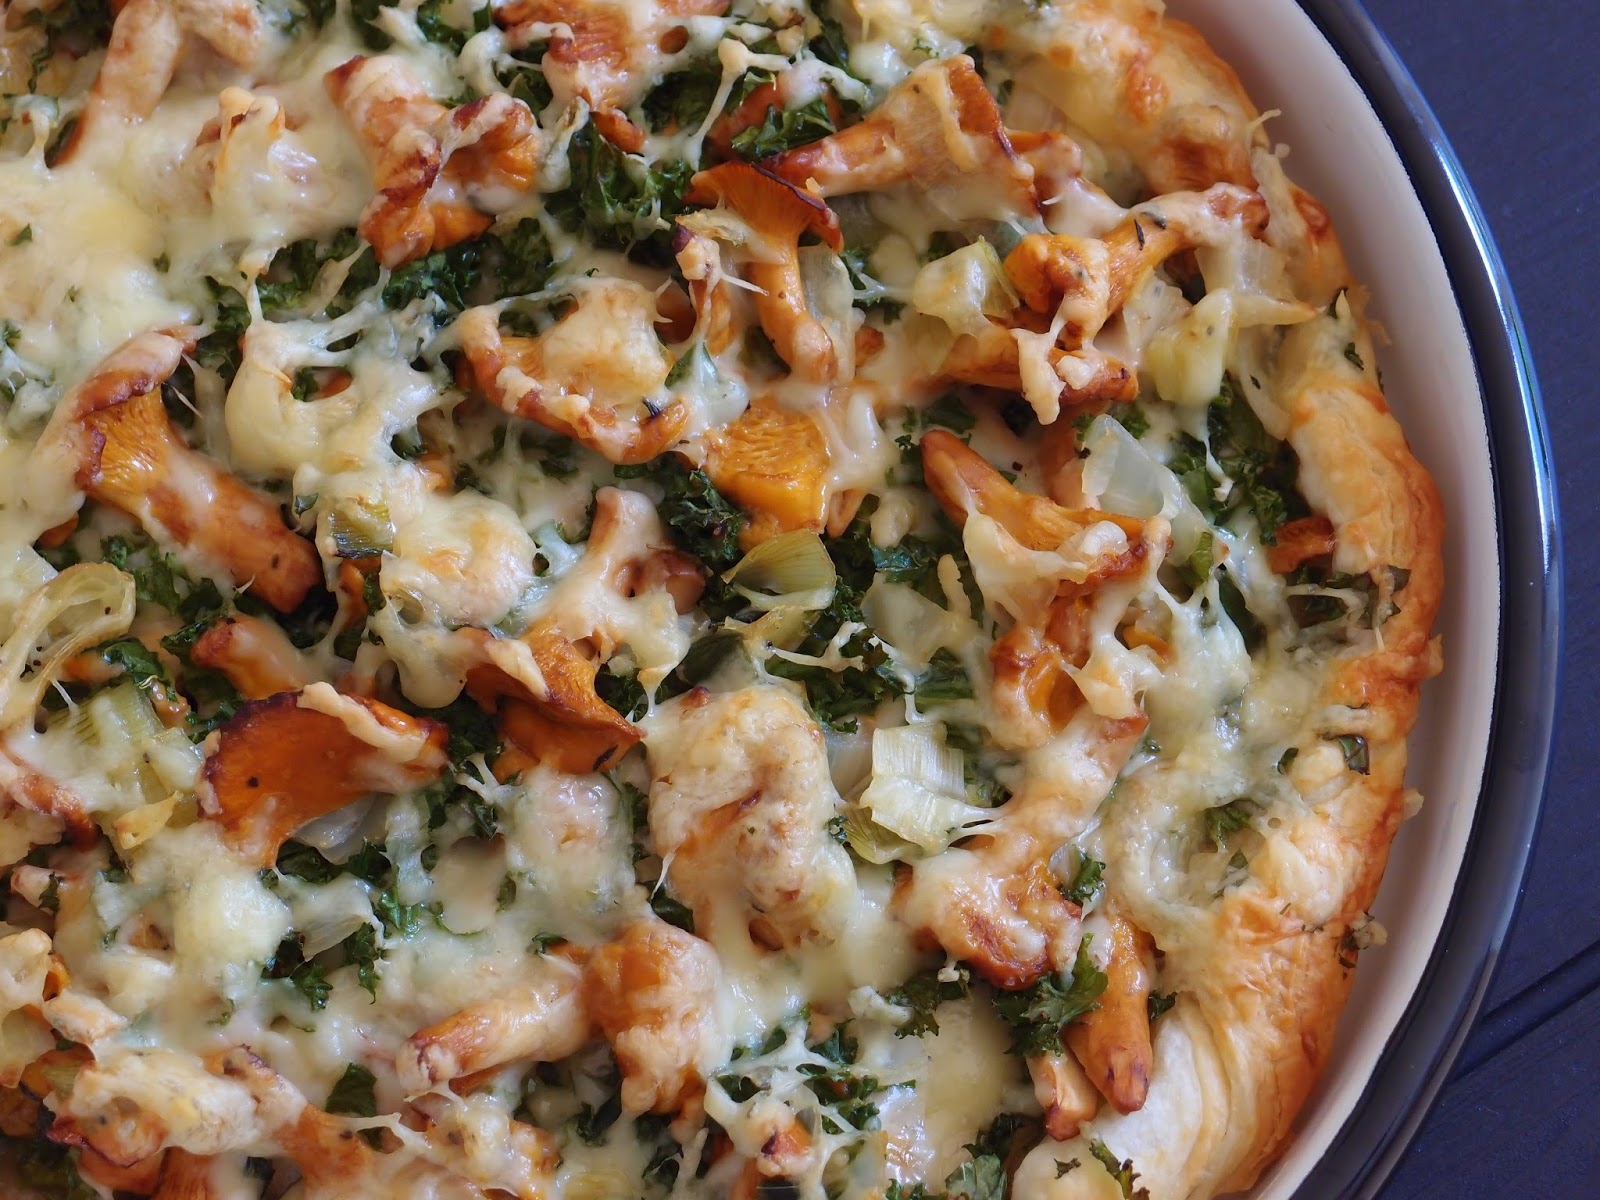 Chanterelle Mushroom and Kale Pizza